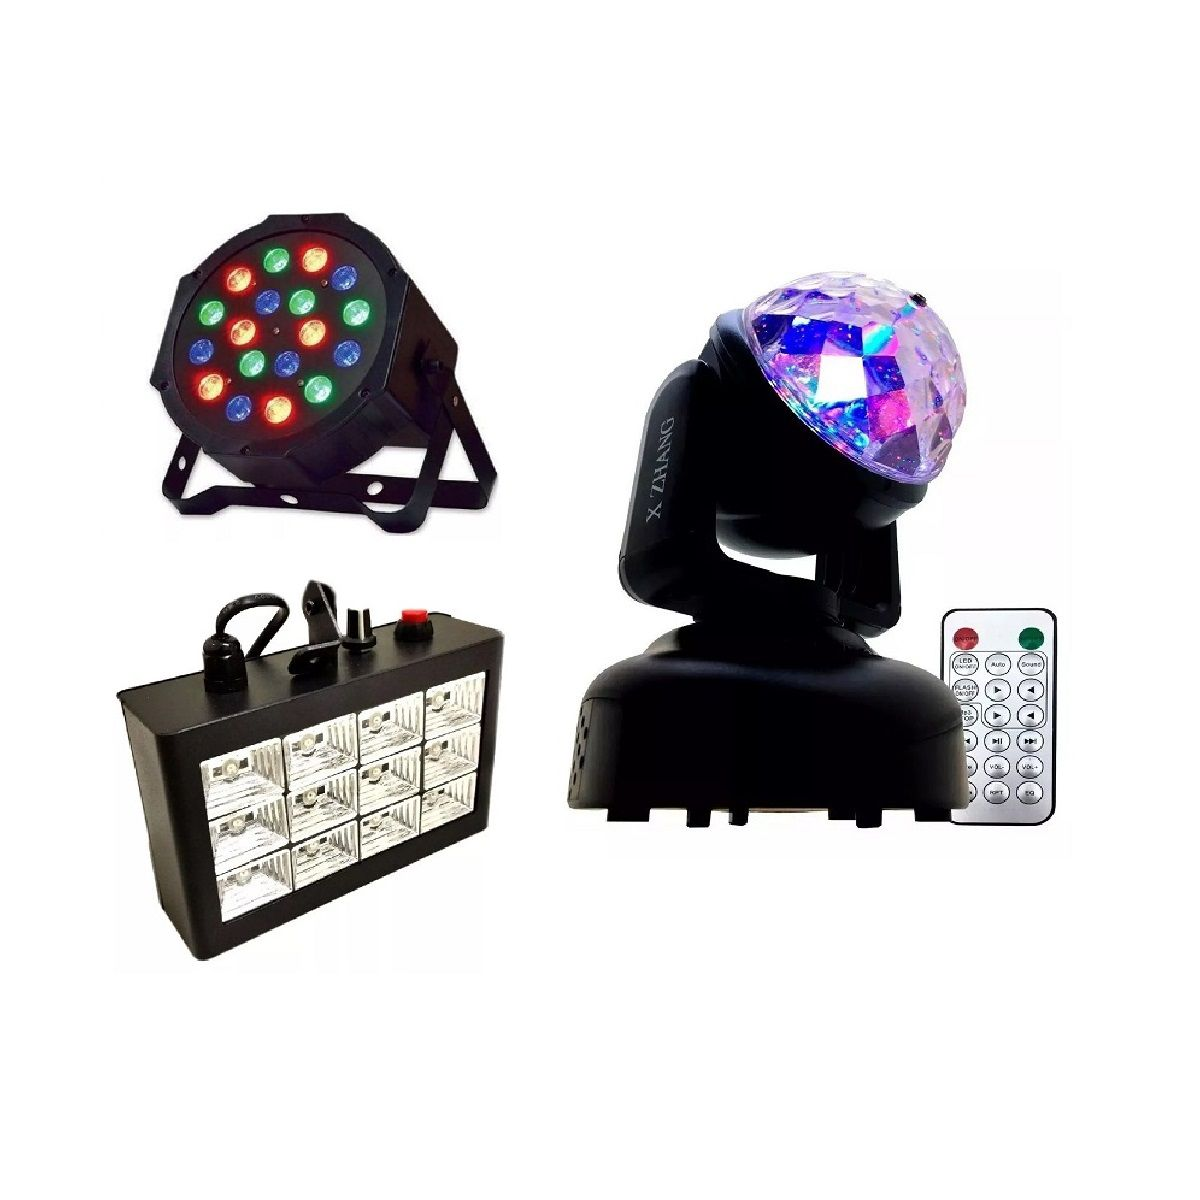 Kit Mini Moving Head RGB + Strobo 12 LEDs Branco Rítmico + Canhão Luz 18 LEDs - HL-080+12LEDBR+18LEDSLIM